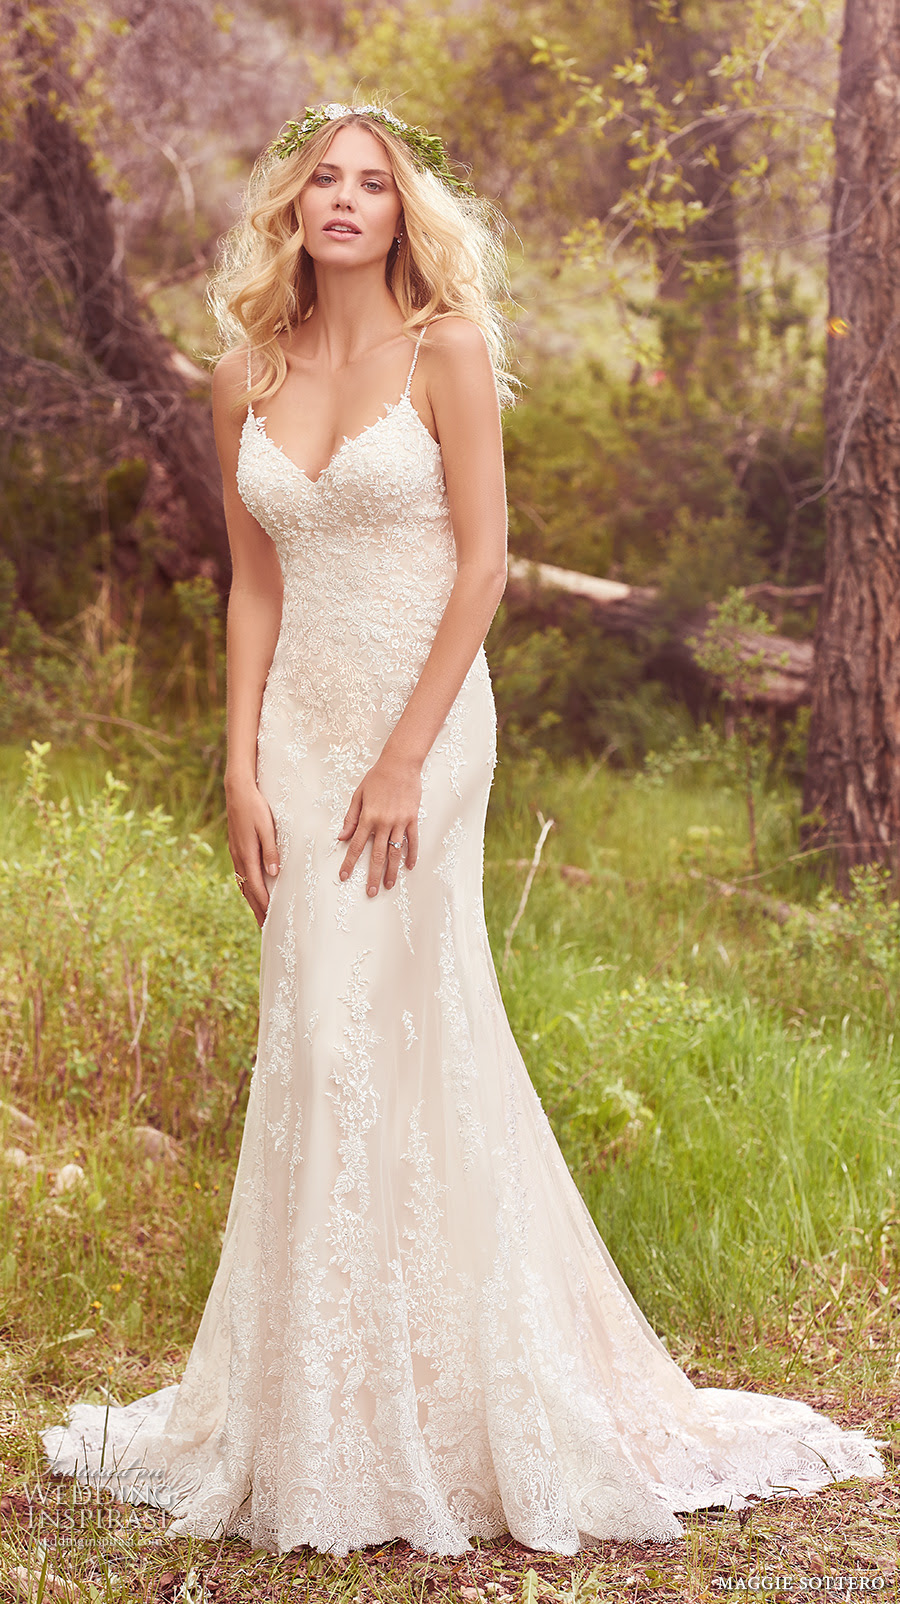 Where to buy maggie sottero wedding dresses online usa knee length